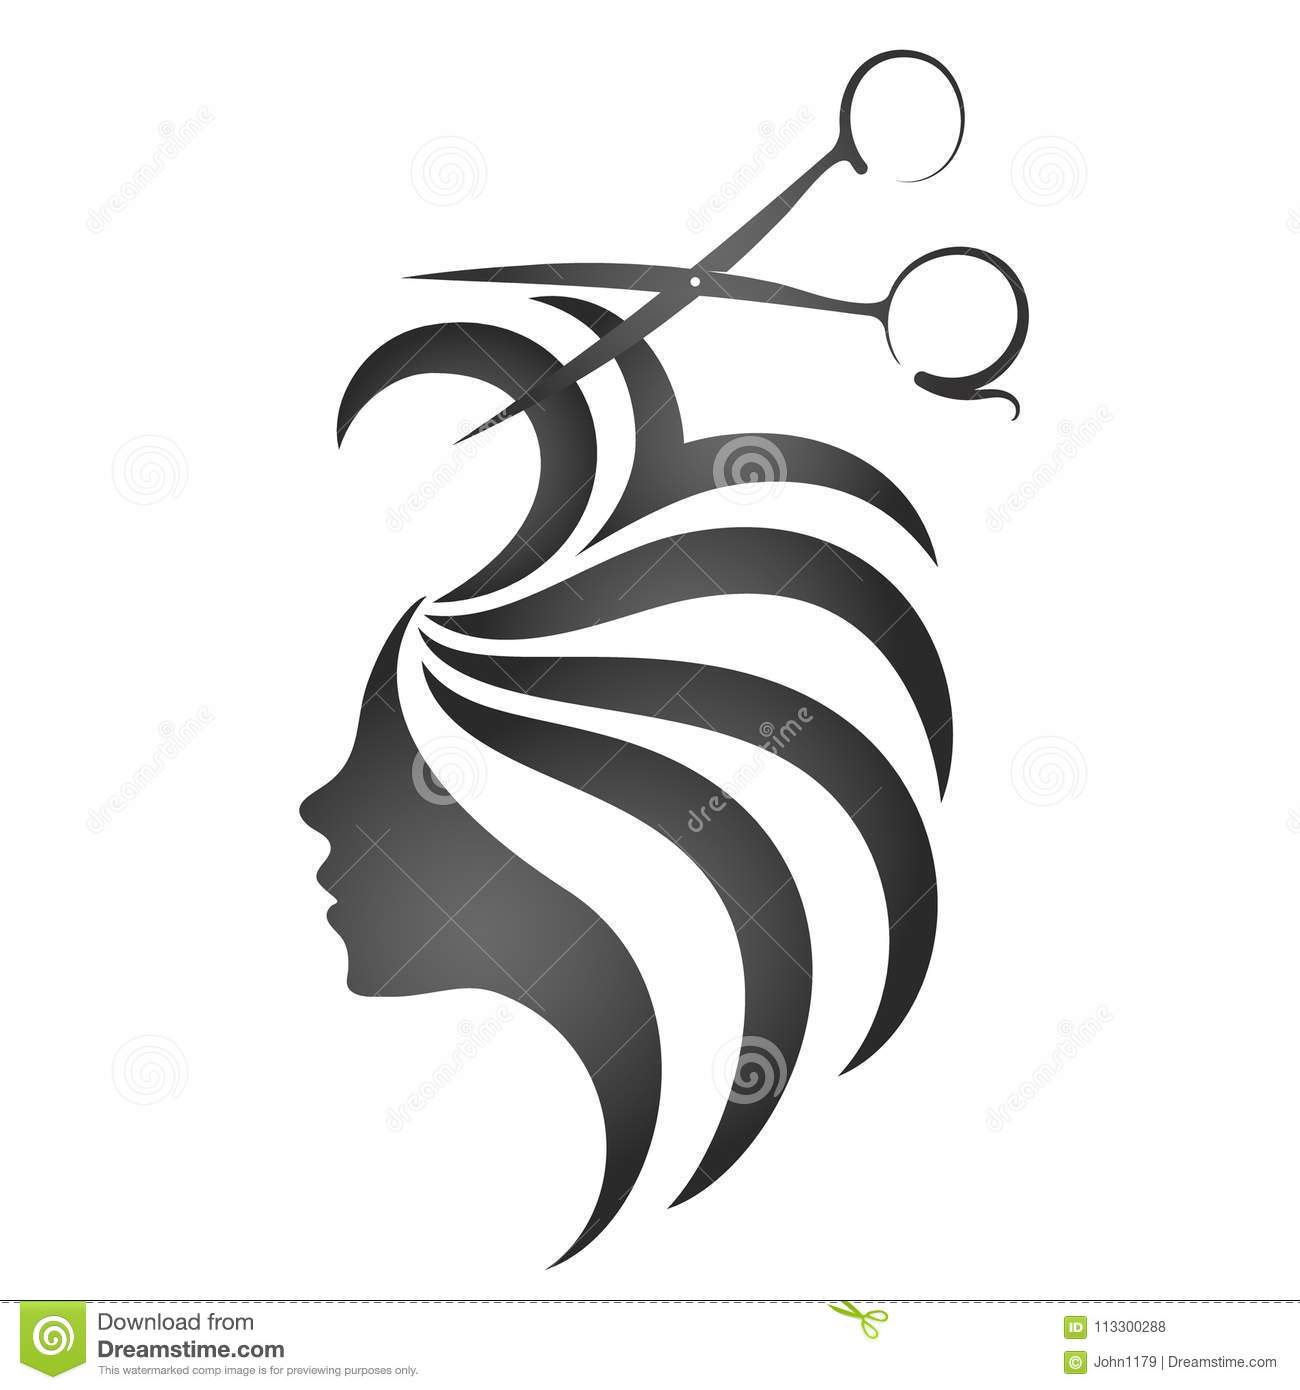 Girl With Hair And Scissors Symbol Stock Vector Illustration Of